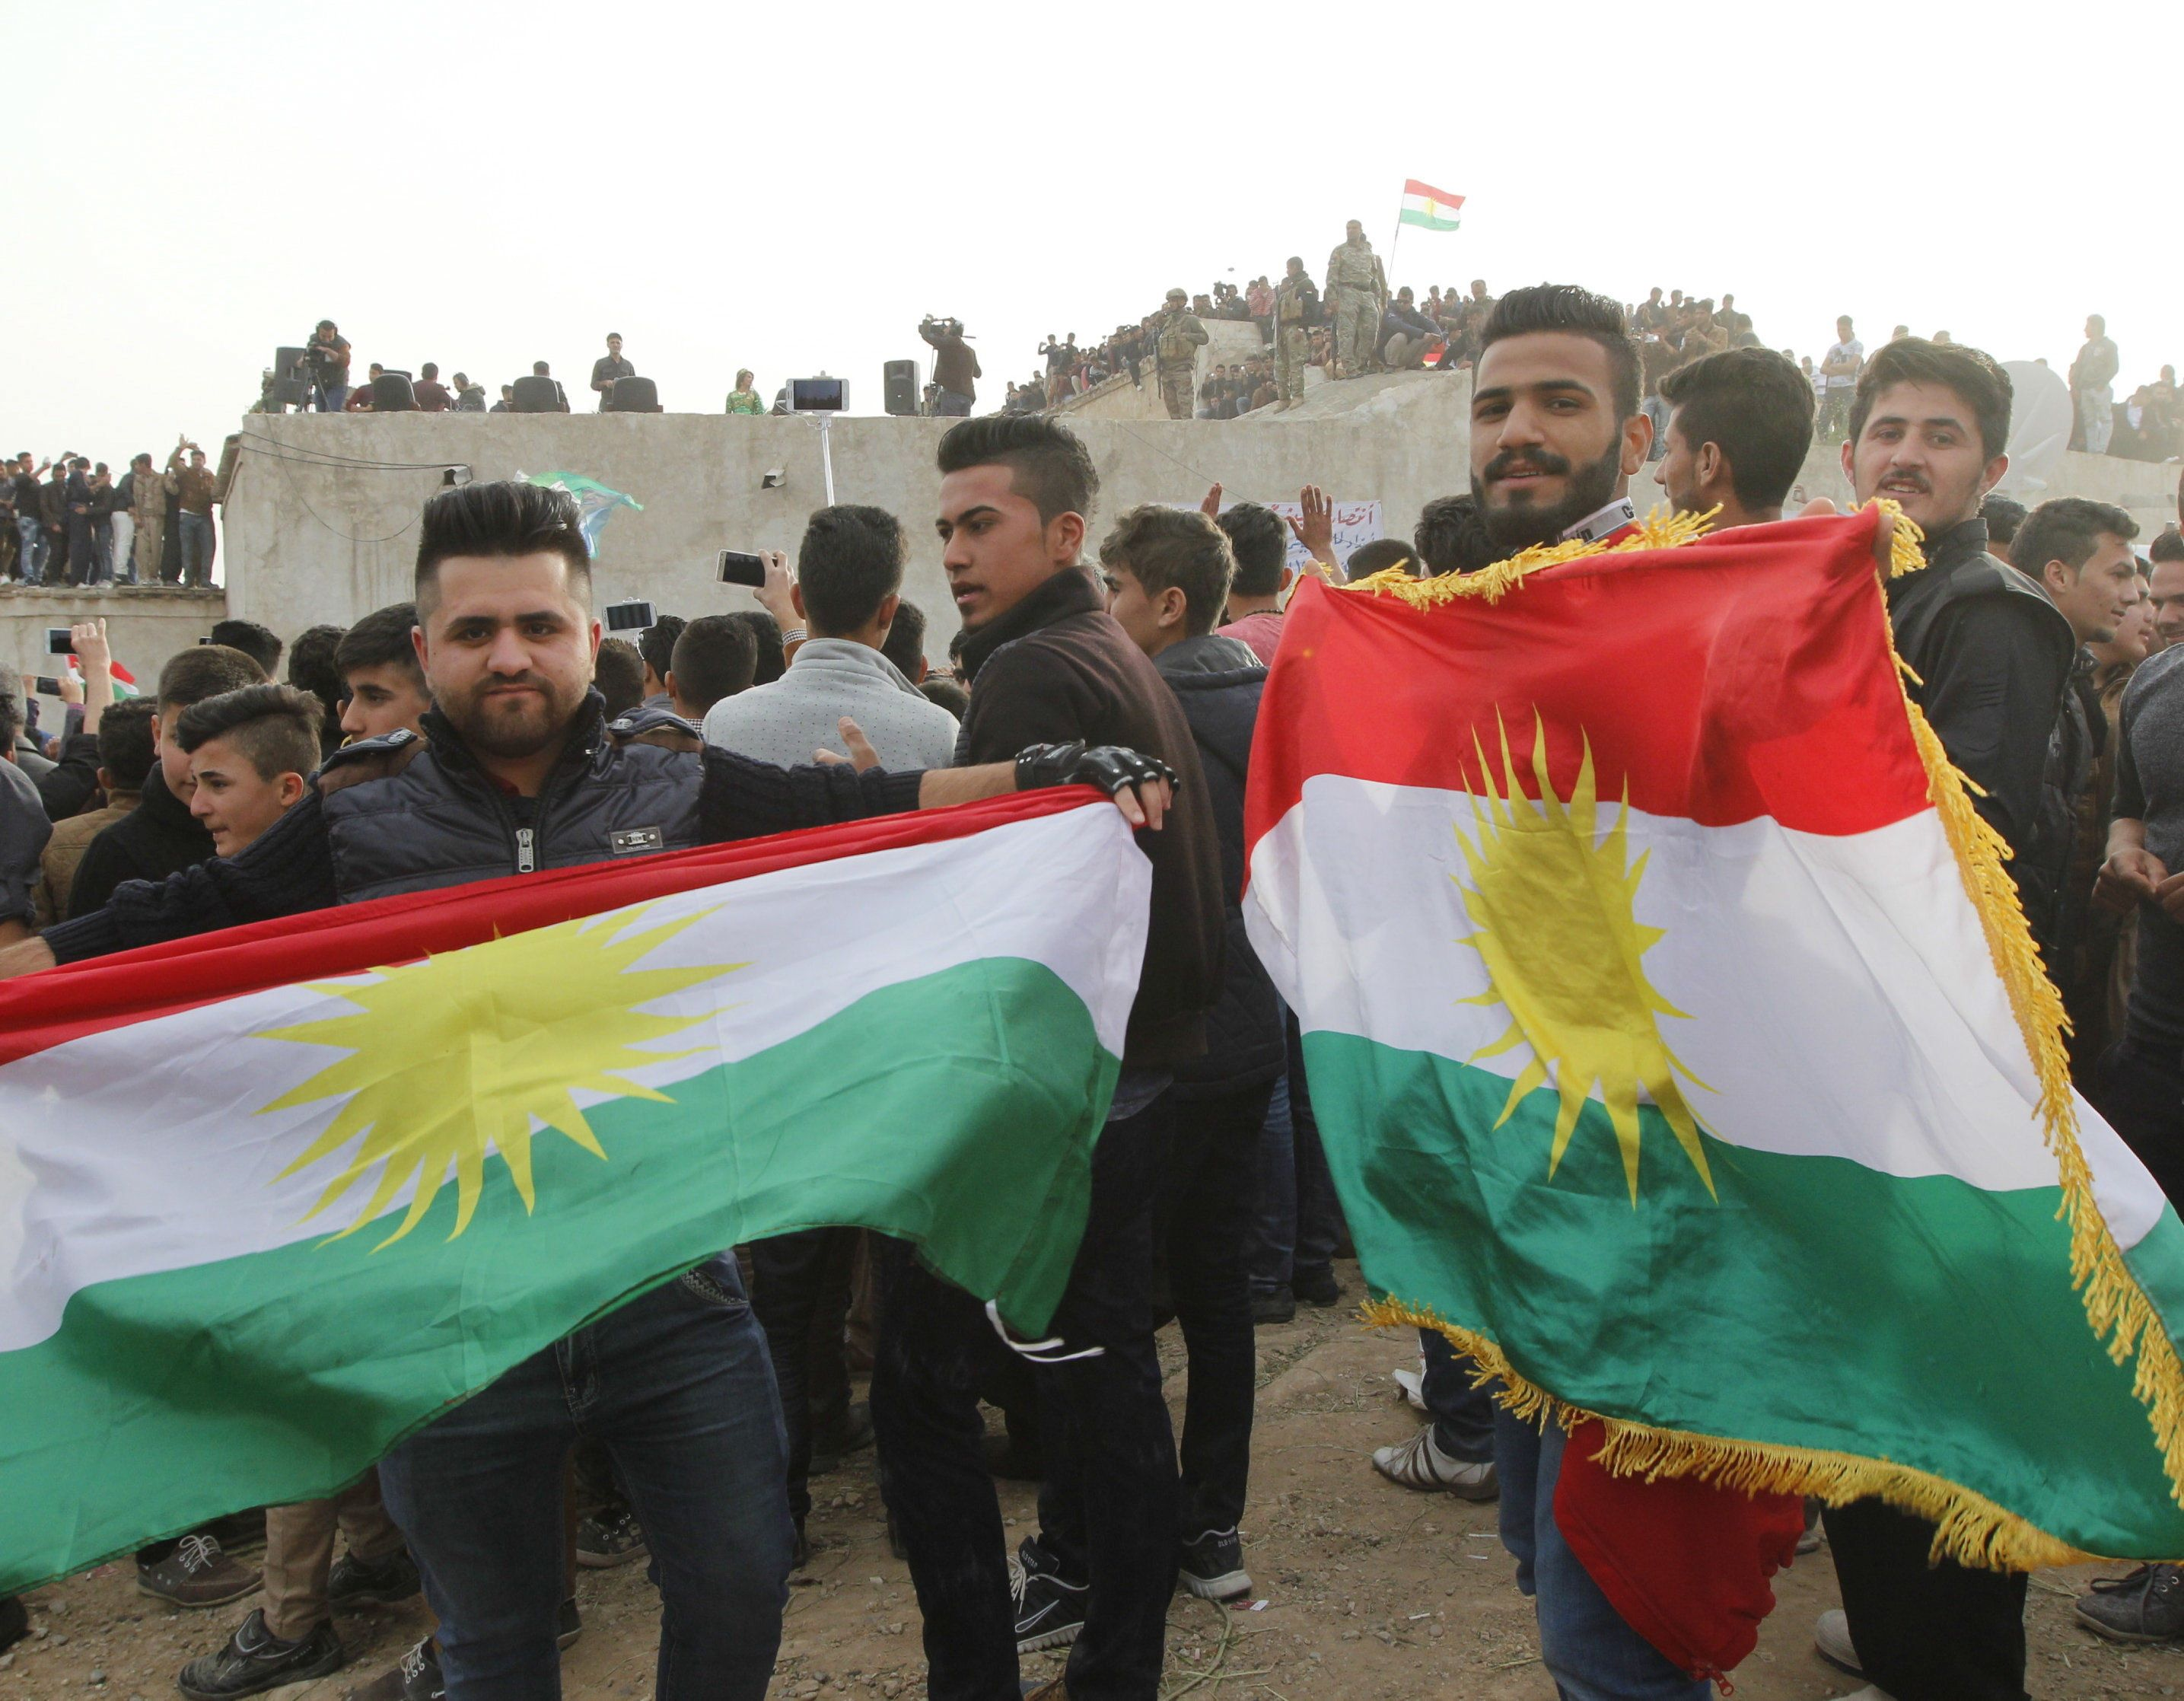 Kurdish residents hold flags during Norouz celebrations in Kirkuk, north of Baghdad March 20, 2016. REUTERS/Ako Rasheed